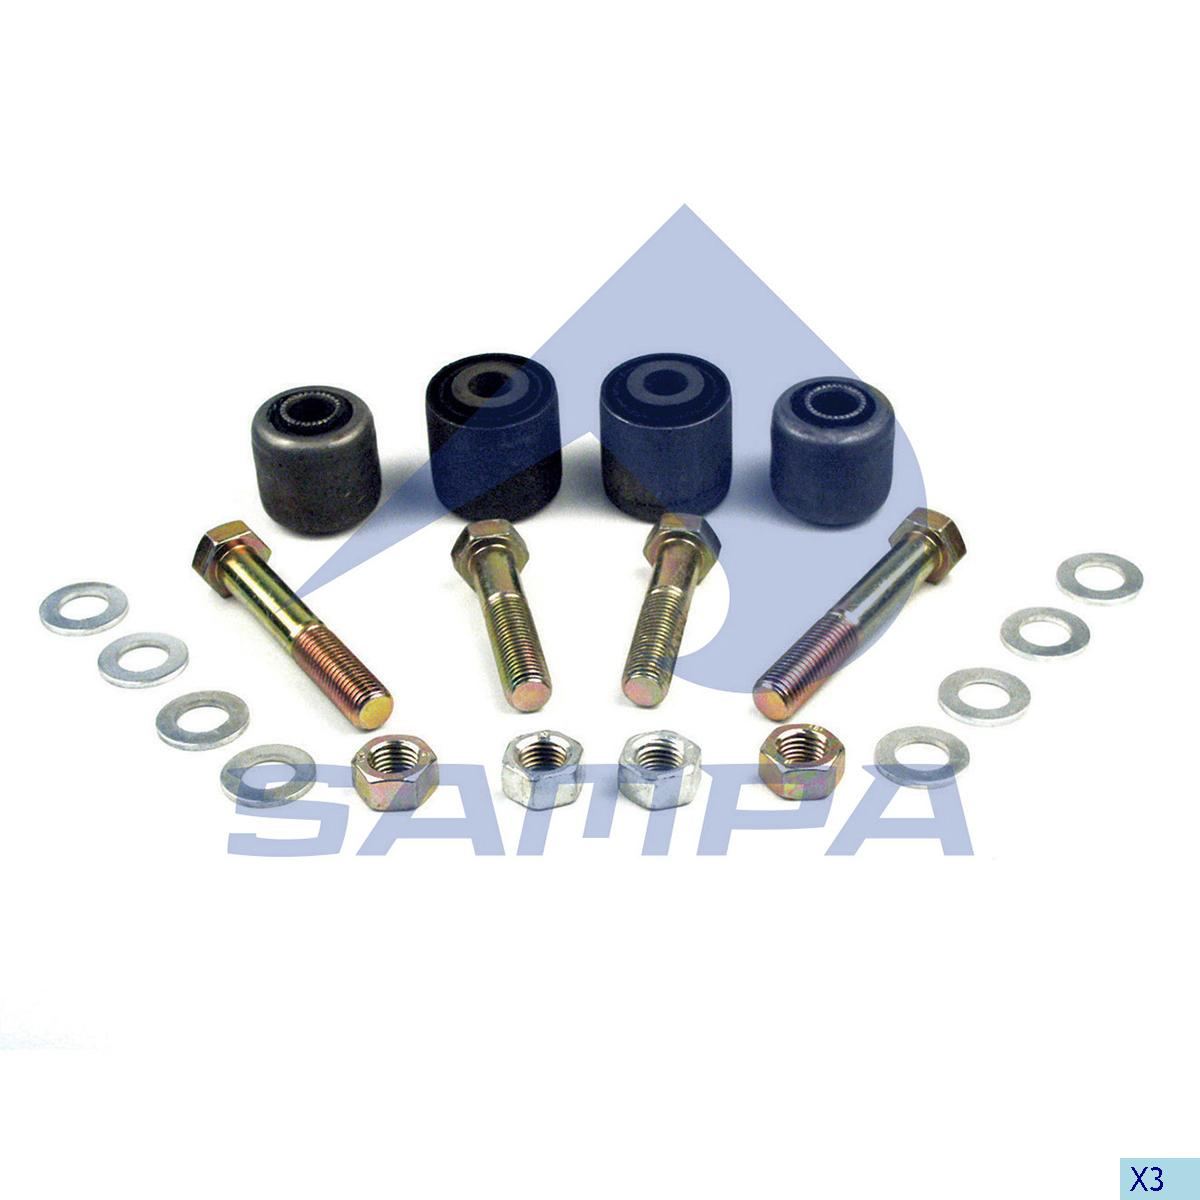 Repair Kit, Stabilizer Bar, Daf, Suspension